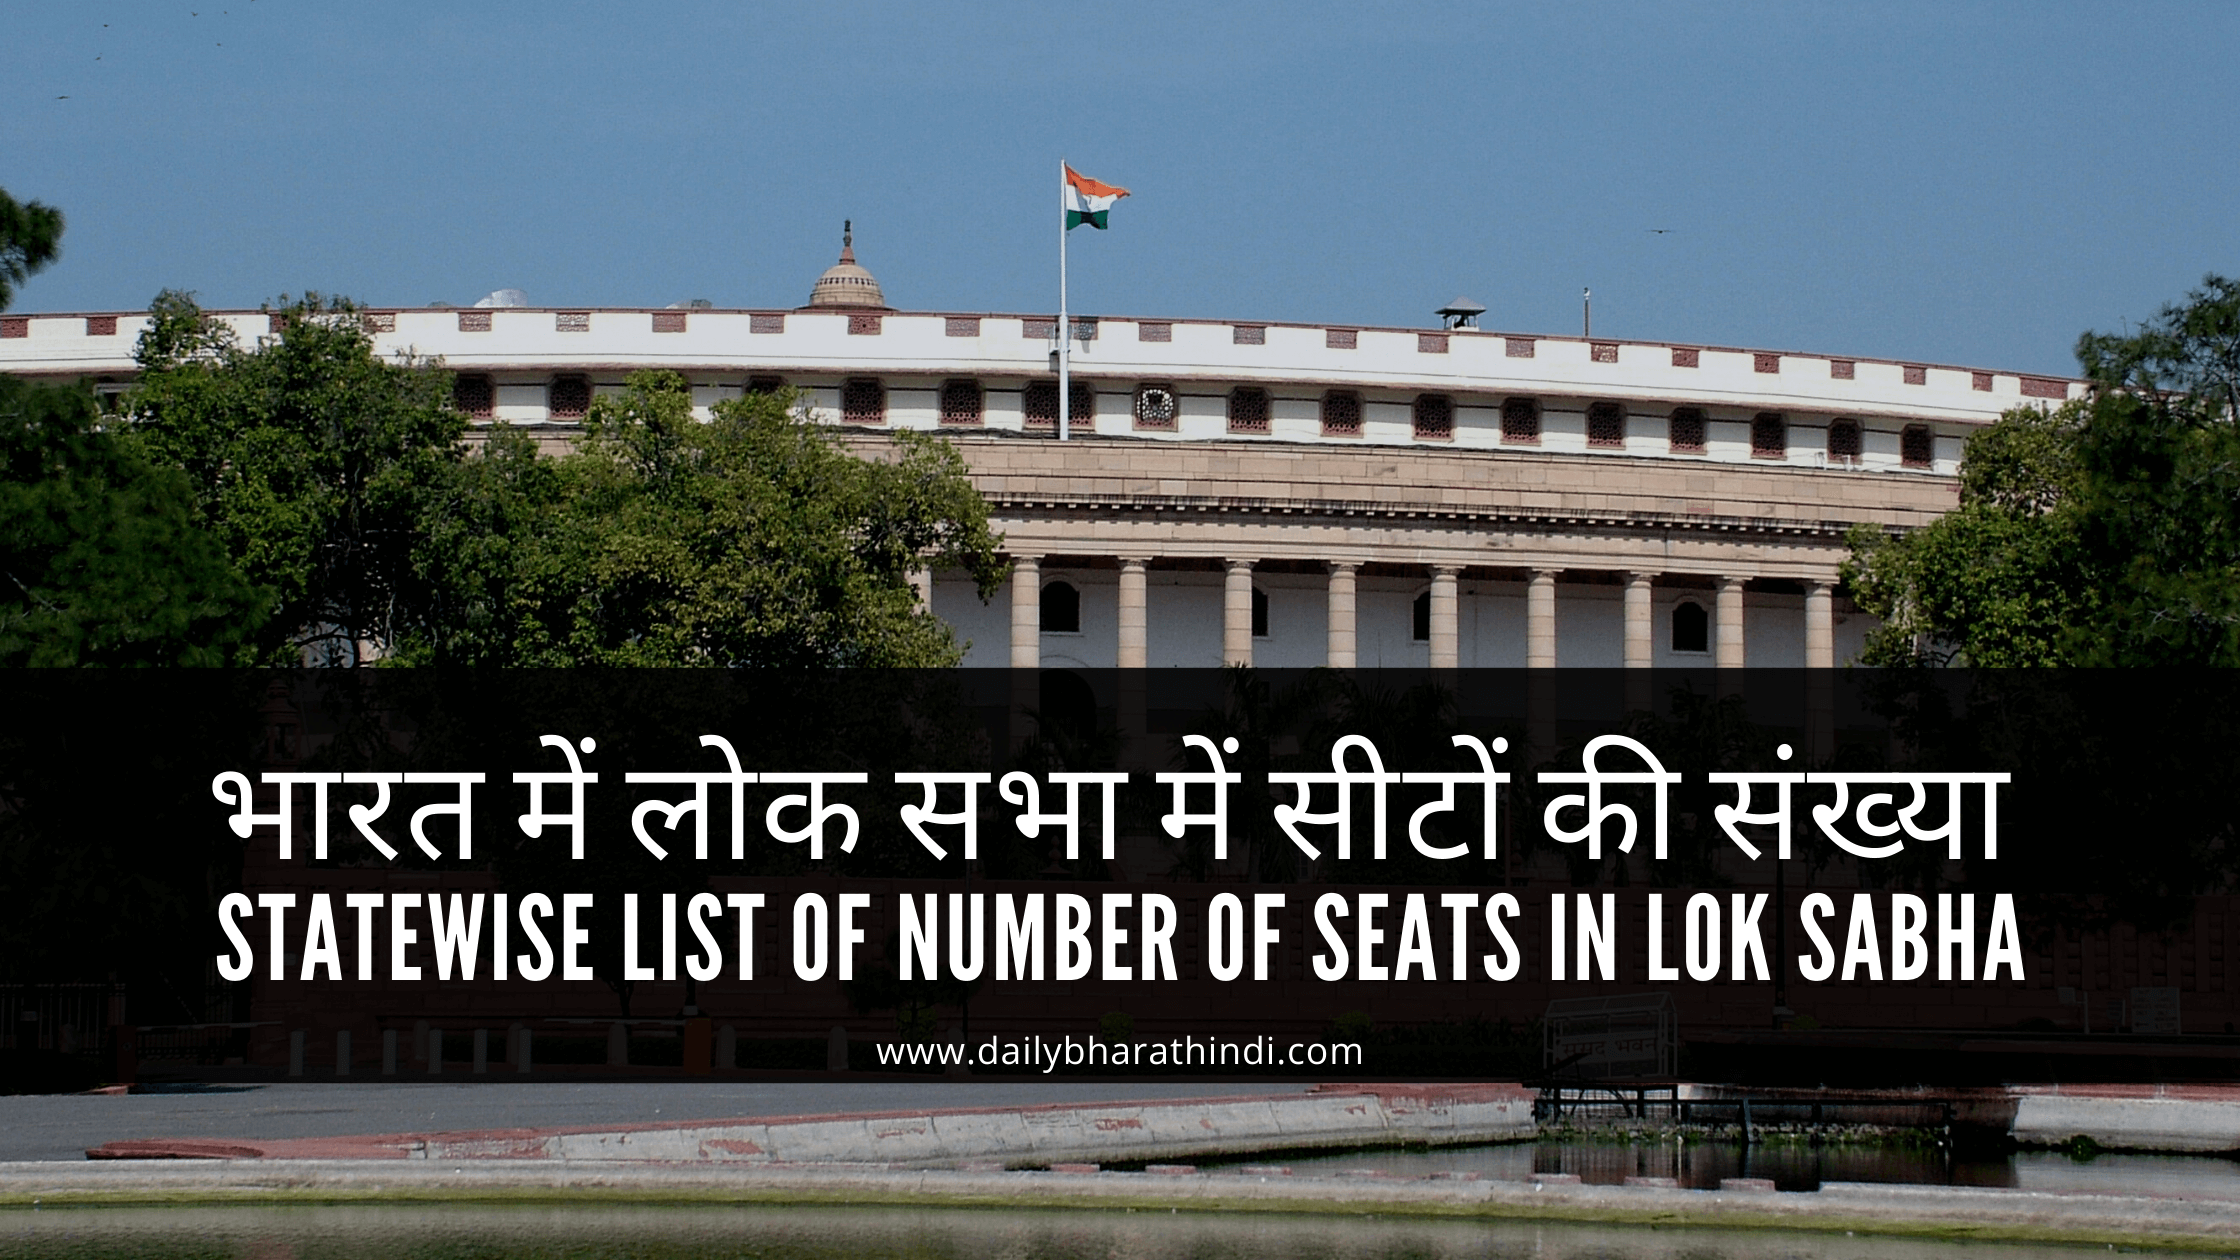 lok sabha seats in india